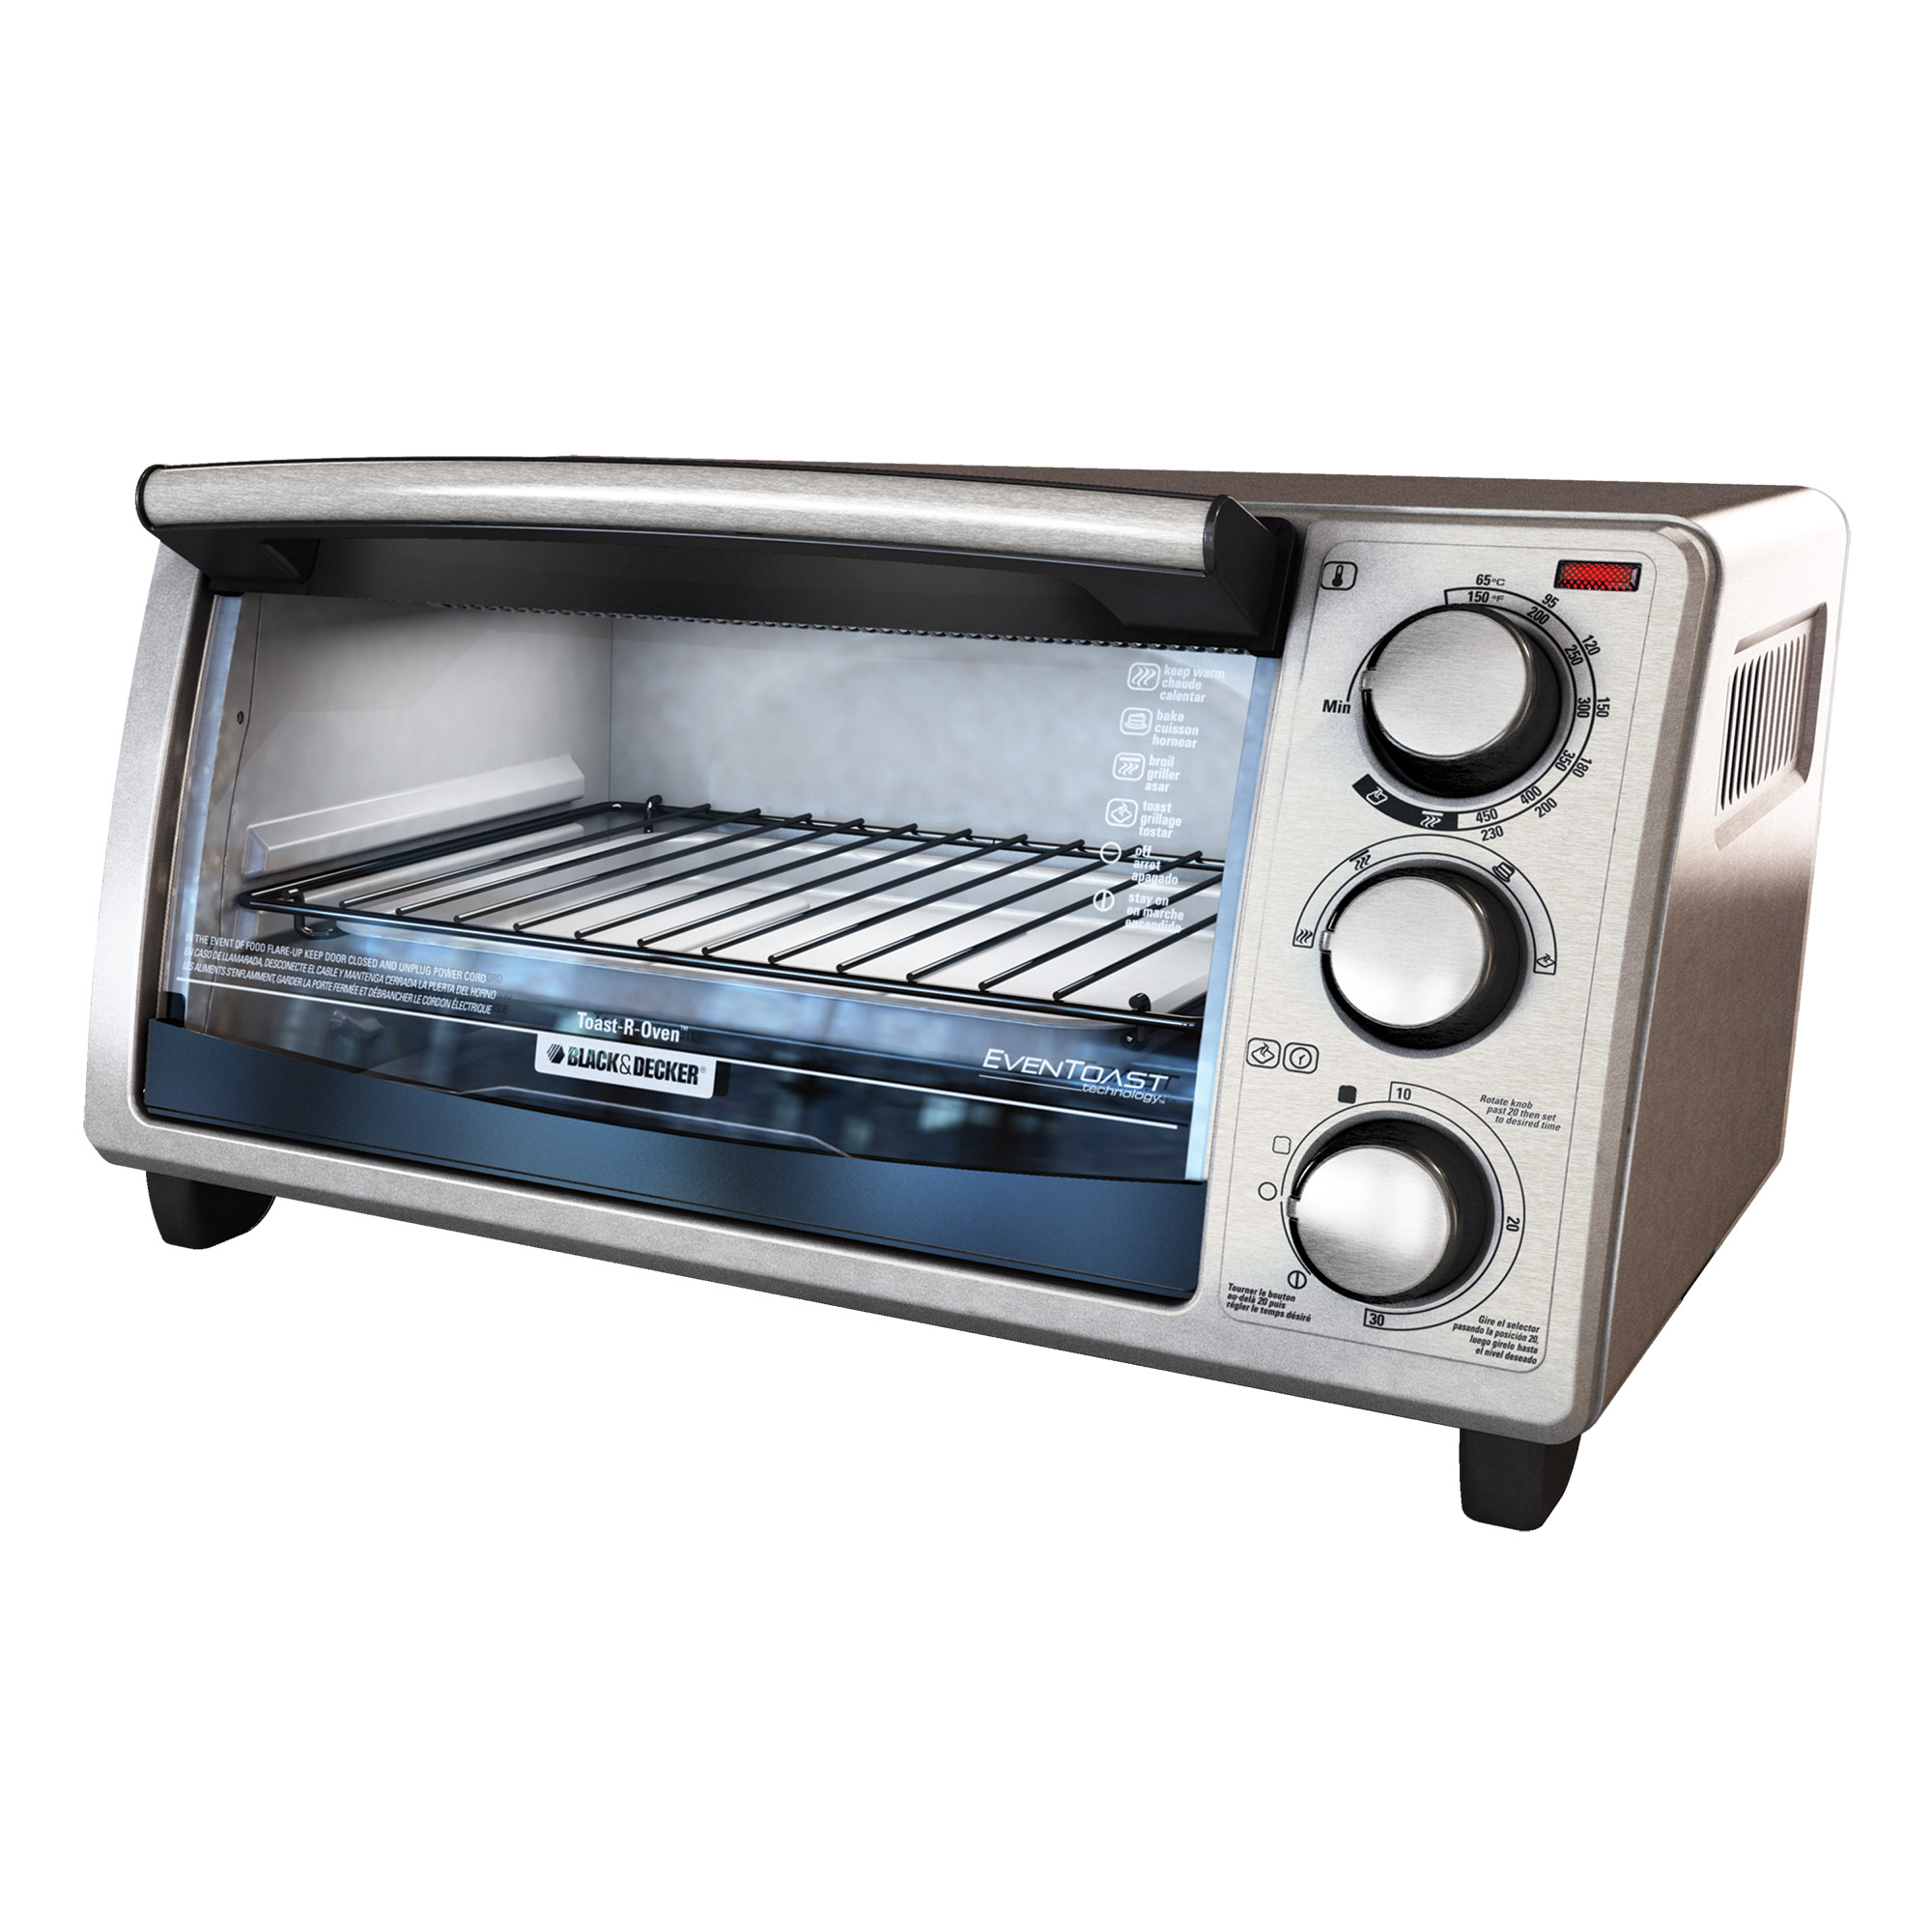 Countertop Oven Toaster : Slice Countertop Toaster Oven